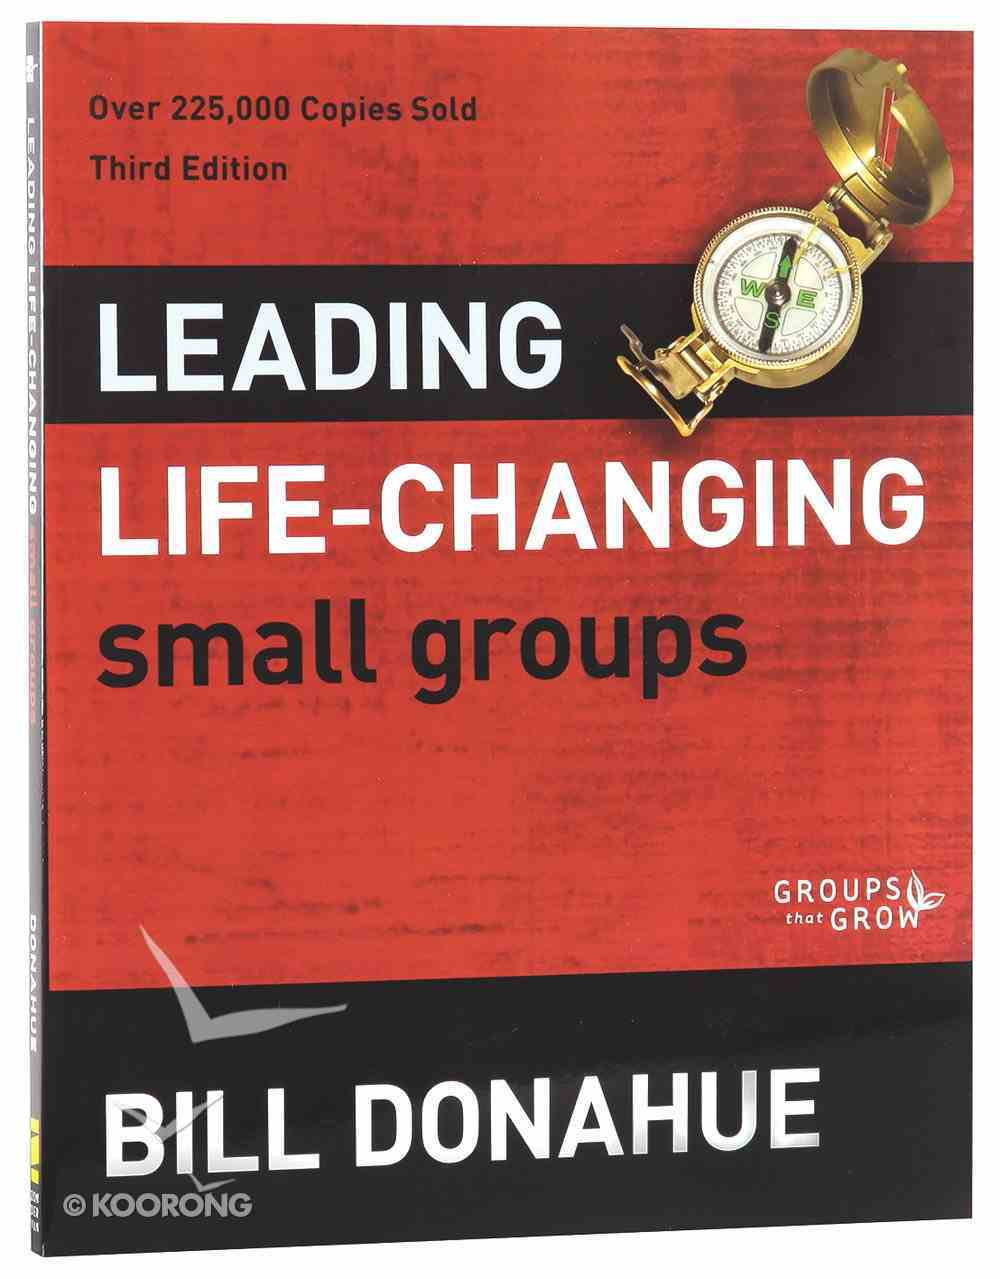 Leading Life-Changing Small Groups (Groups That Grow Series) Paperback